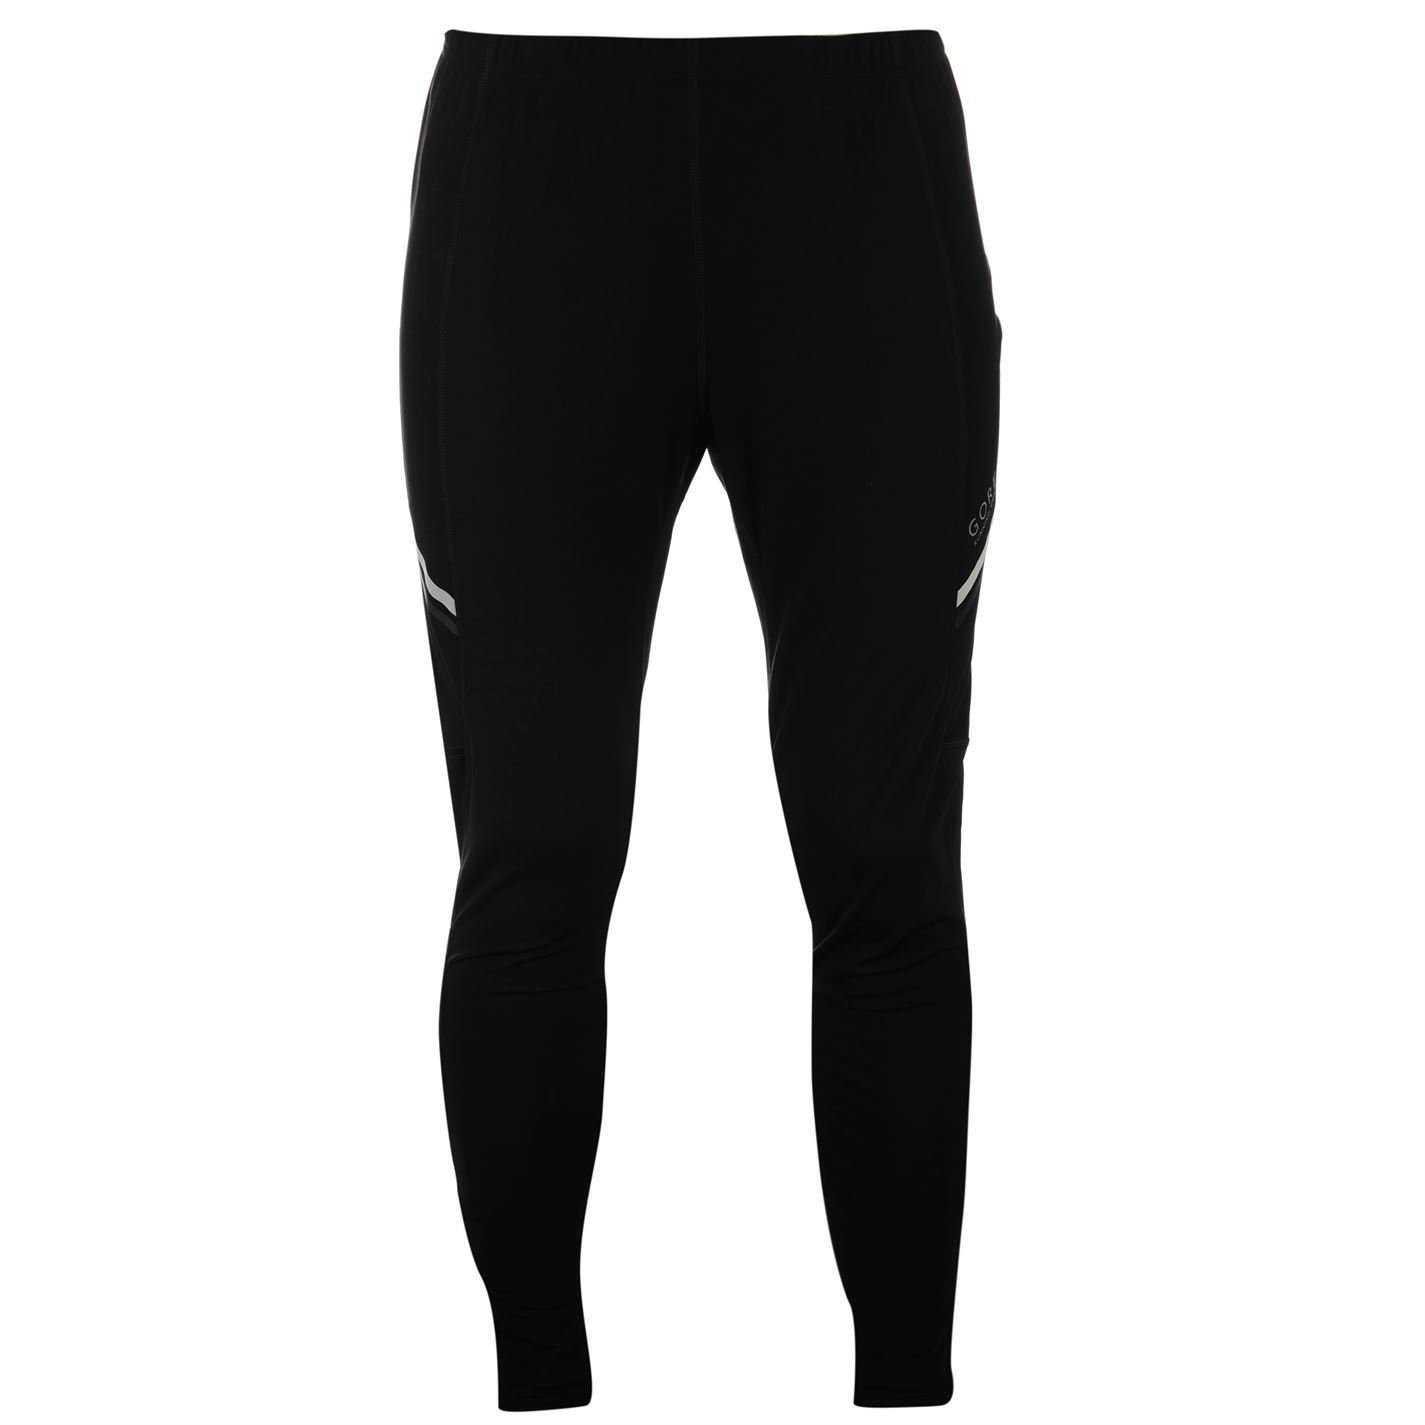 Gore Mens Mythos Thermo Tights Running Jogging Training Workout Bottoms